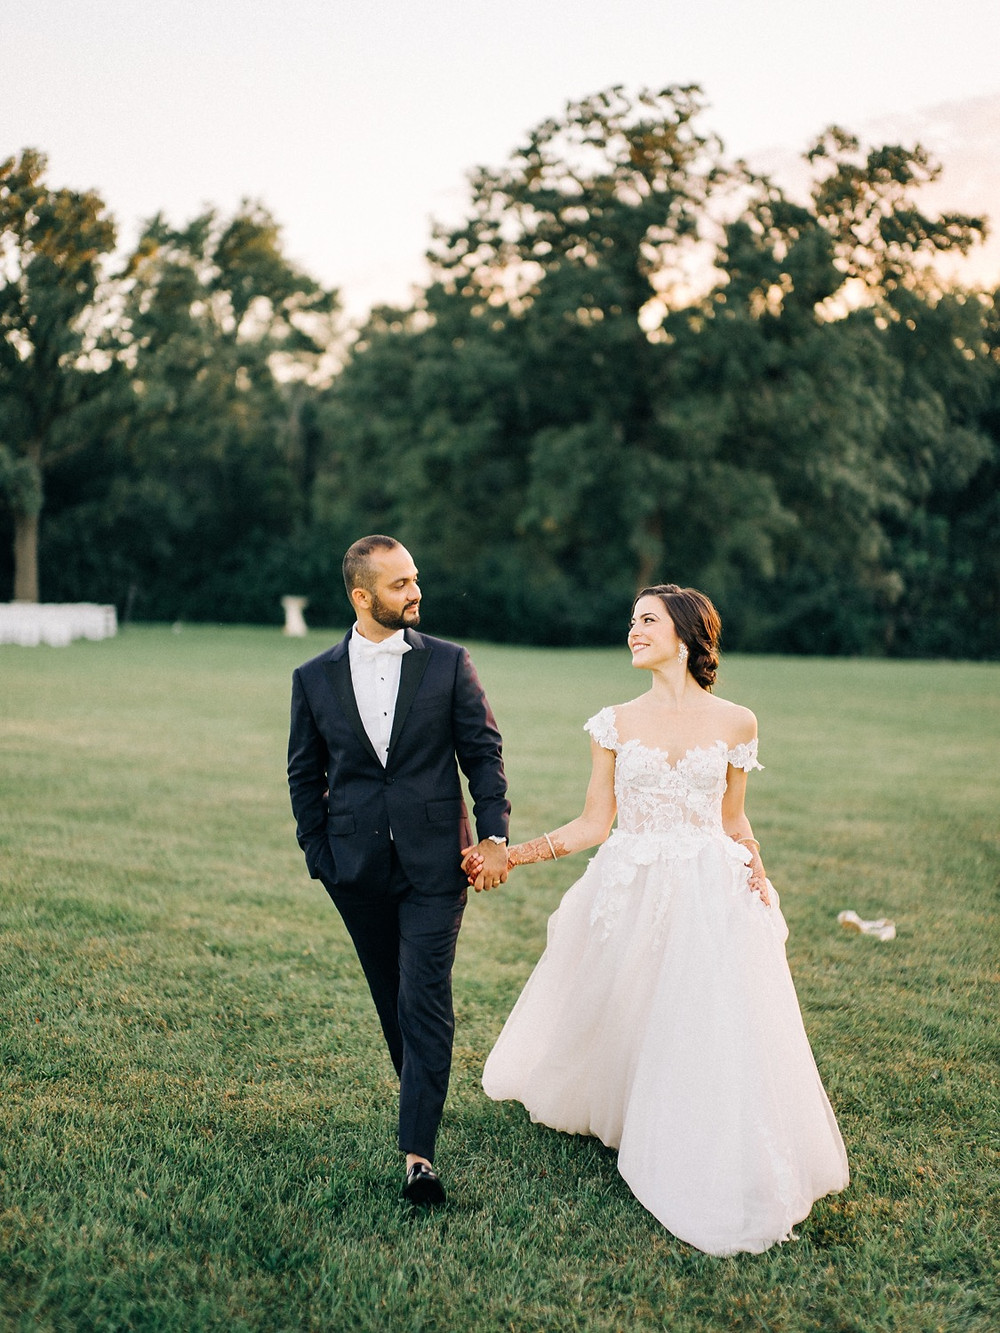 Chicago Wedding Planner at Orchard Ridge Farms